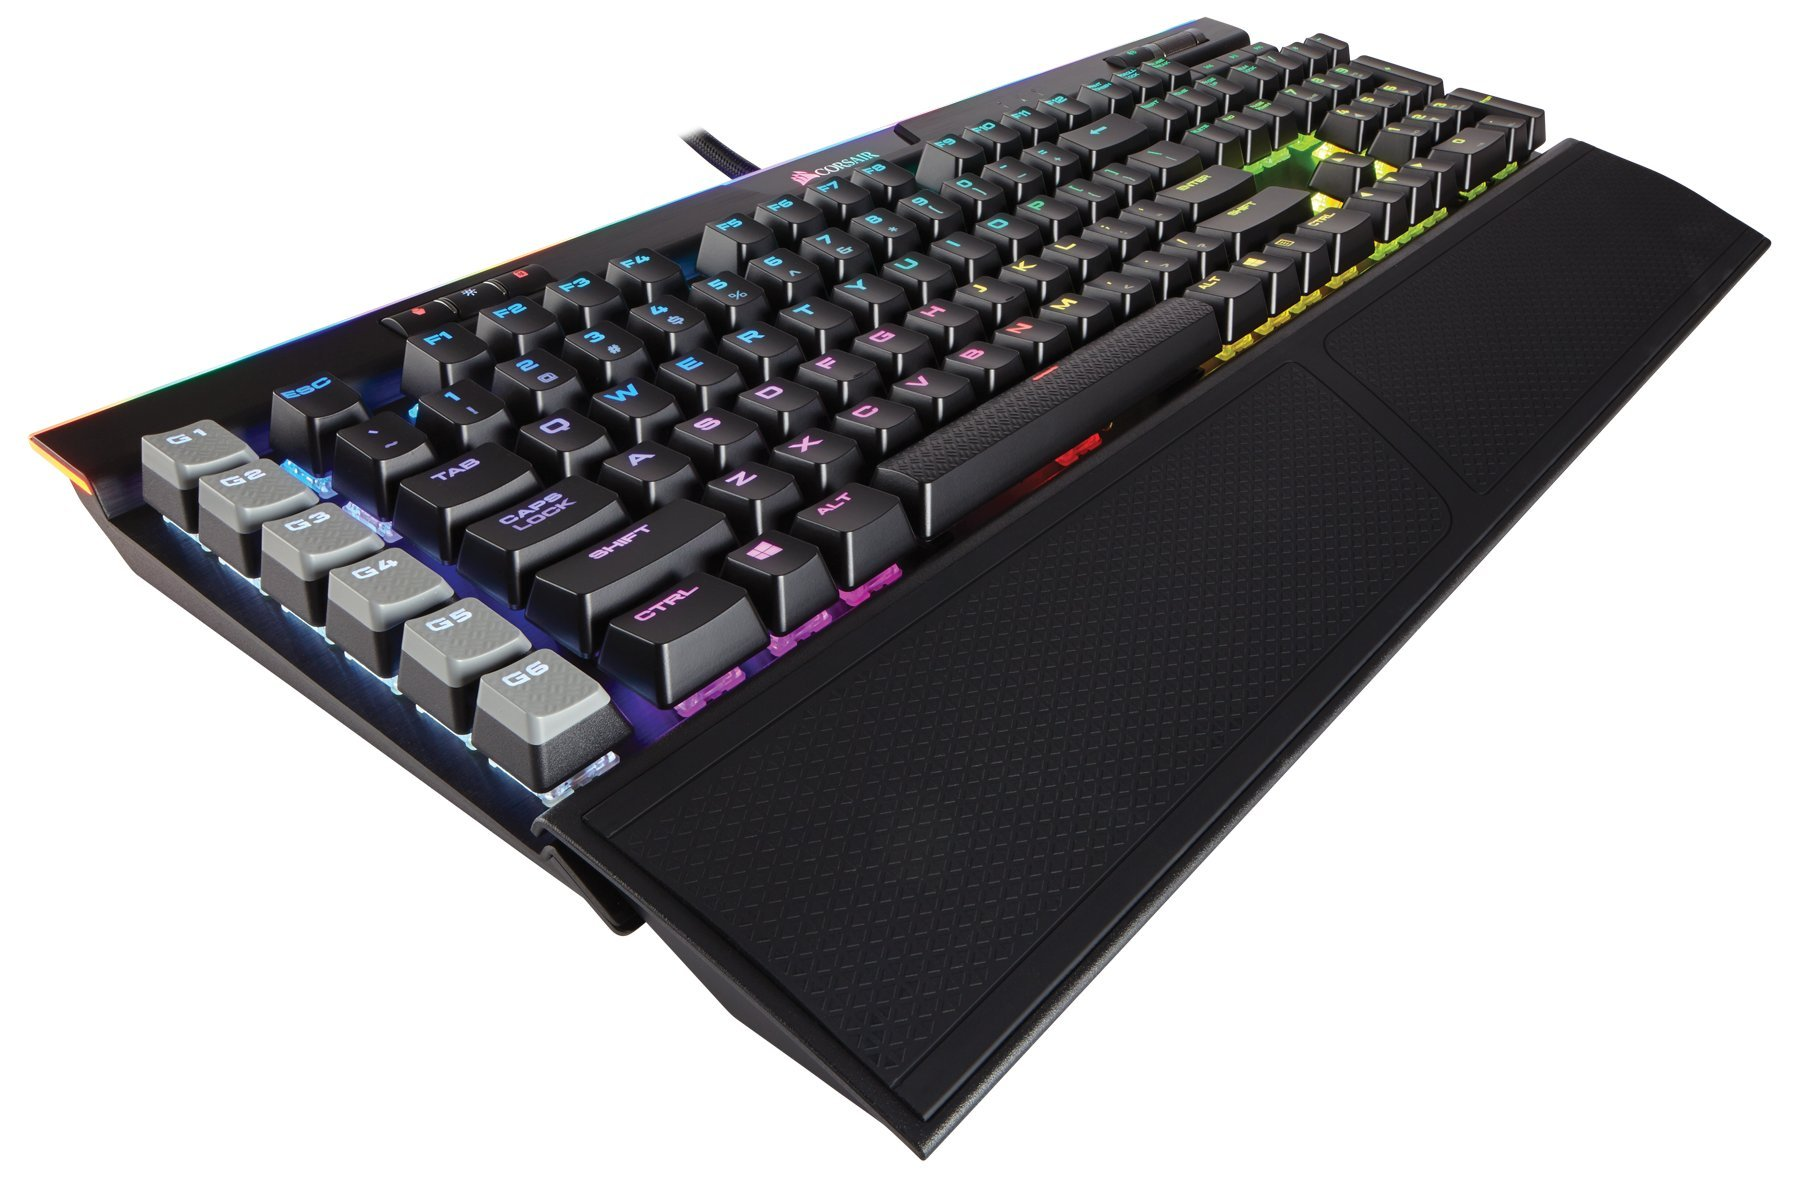 CORSAIR K95 RGB PLATINUM Mechanical Gaming Keyboard -  USB Passthrough & Media Controls - Tactile & Quiet - Cherry MX Brown – RGB LED Backlit